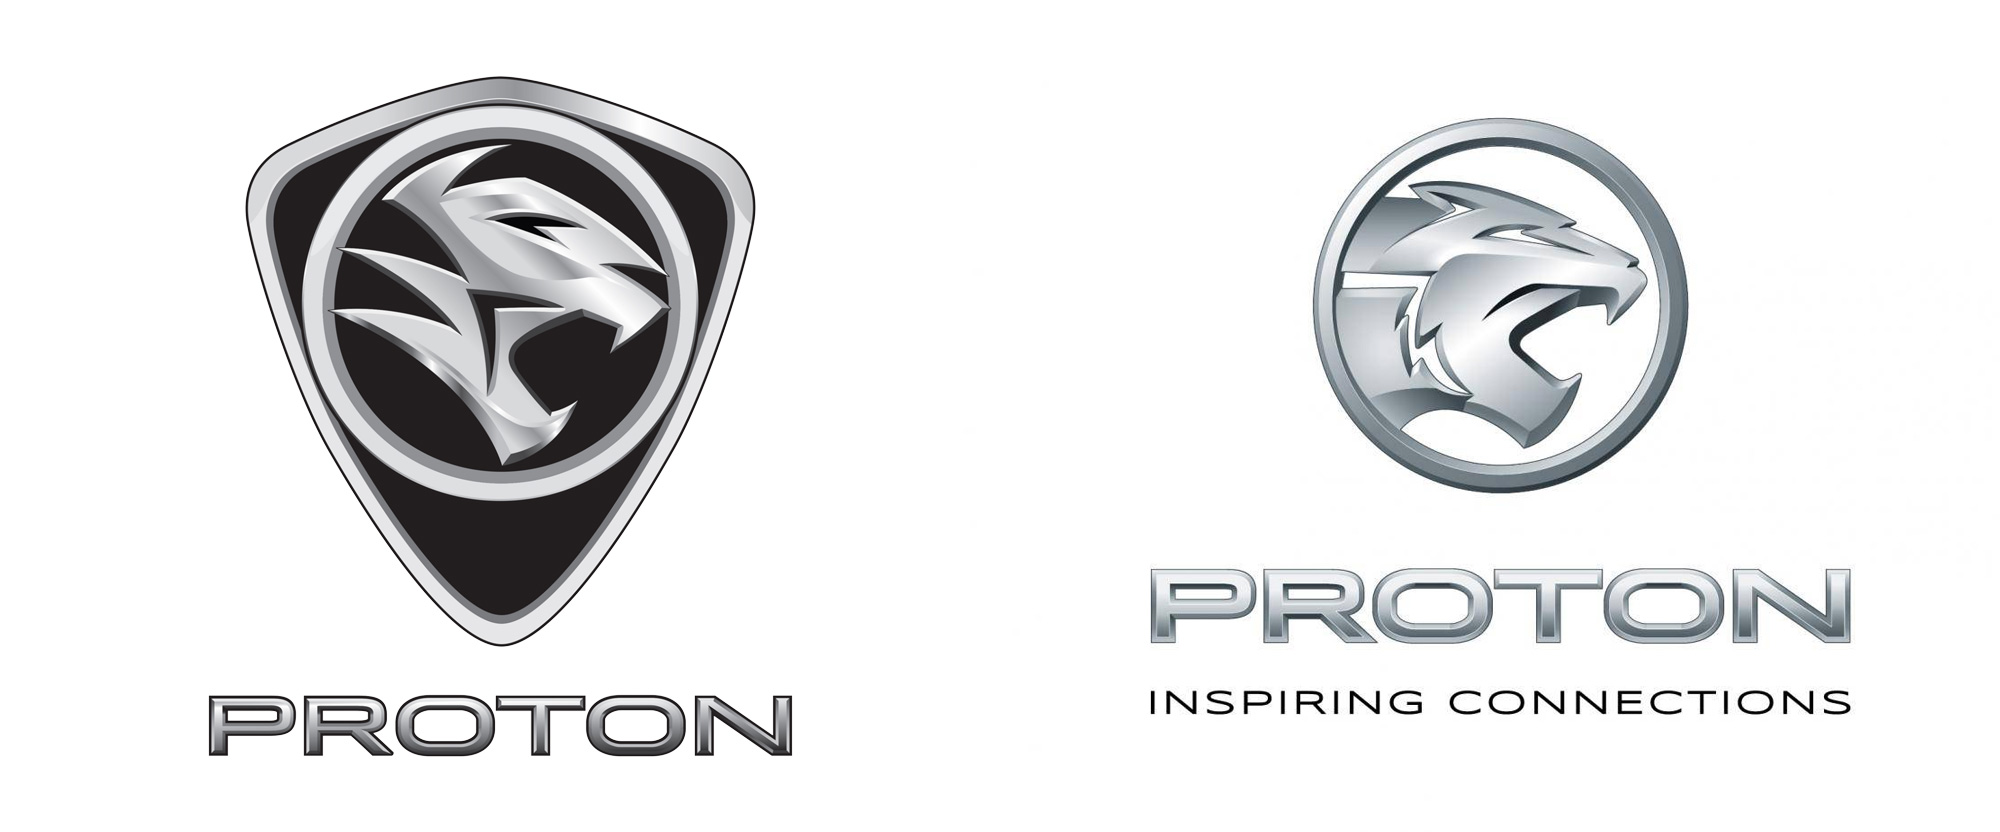 New Logo for Proton